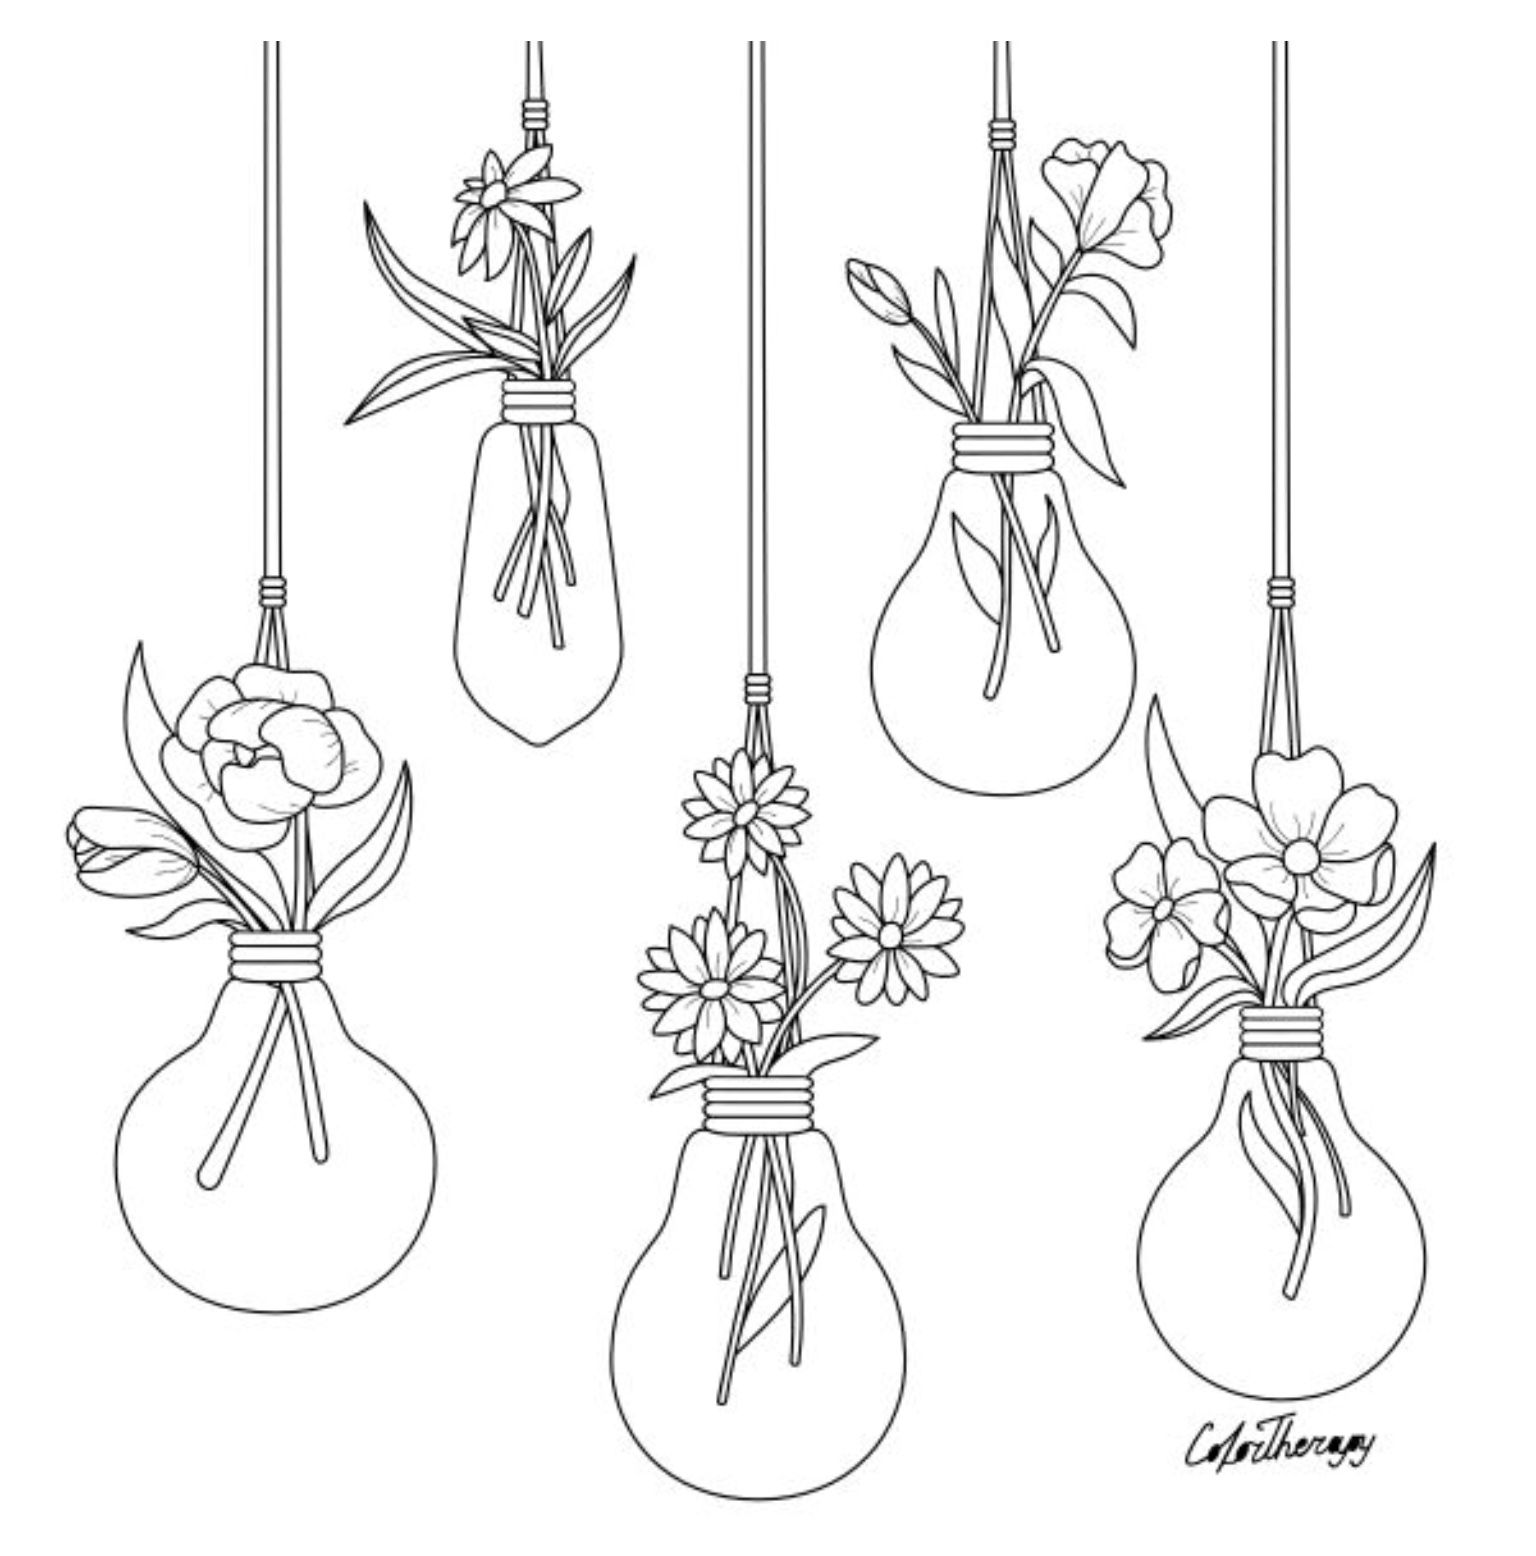 The Sneakpeek For The Next Gift Of The Day Tomorrow Do You Like This One Flowers Lightbulbs Flower Doodles Flower Drawing Bullet Journal Inspiration